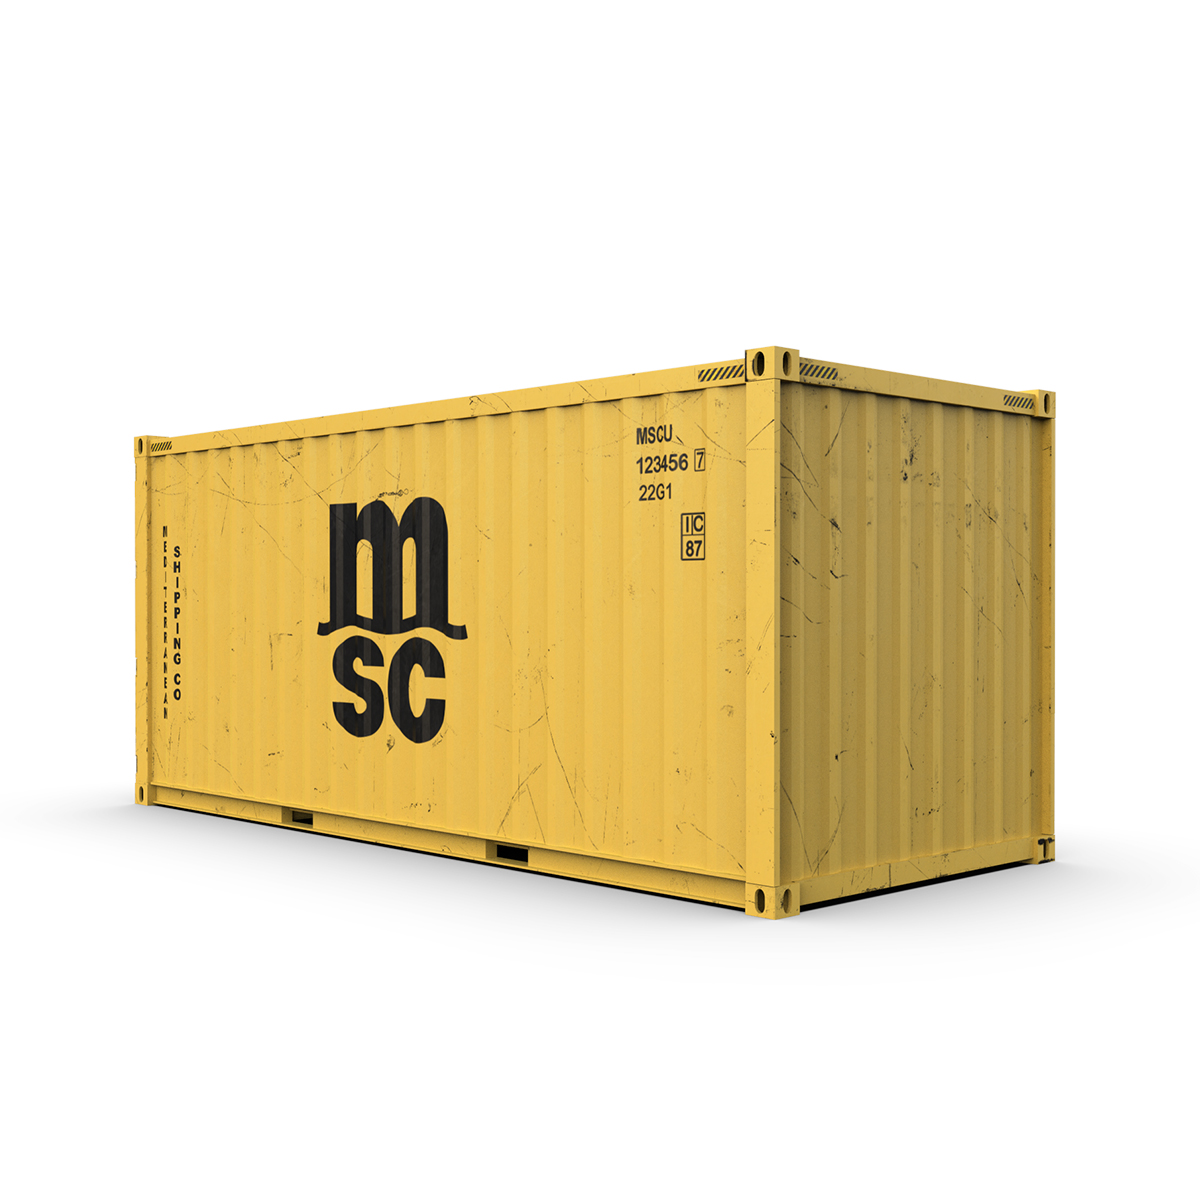 20 feet msc standard shipping container 3d model 3ds max fbx ma mb obj 278383